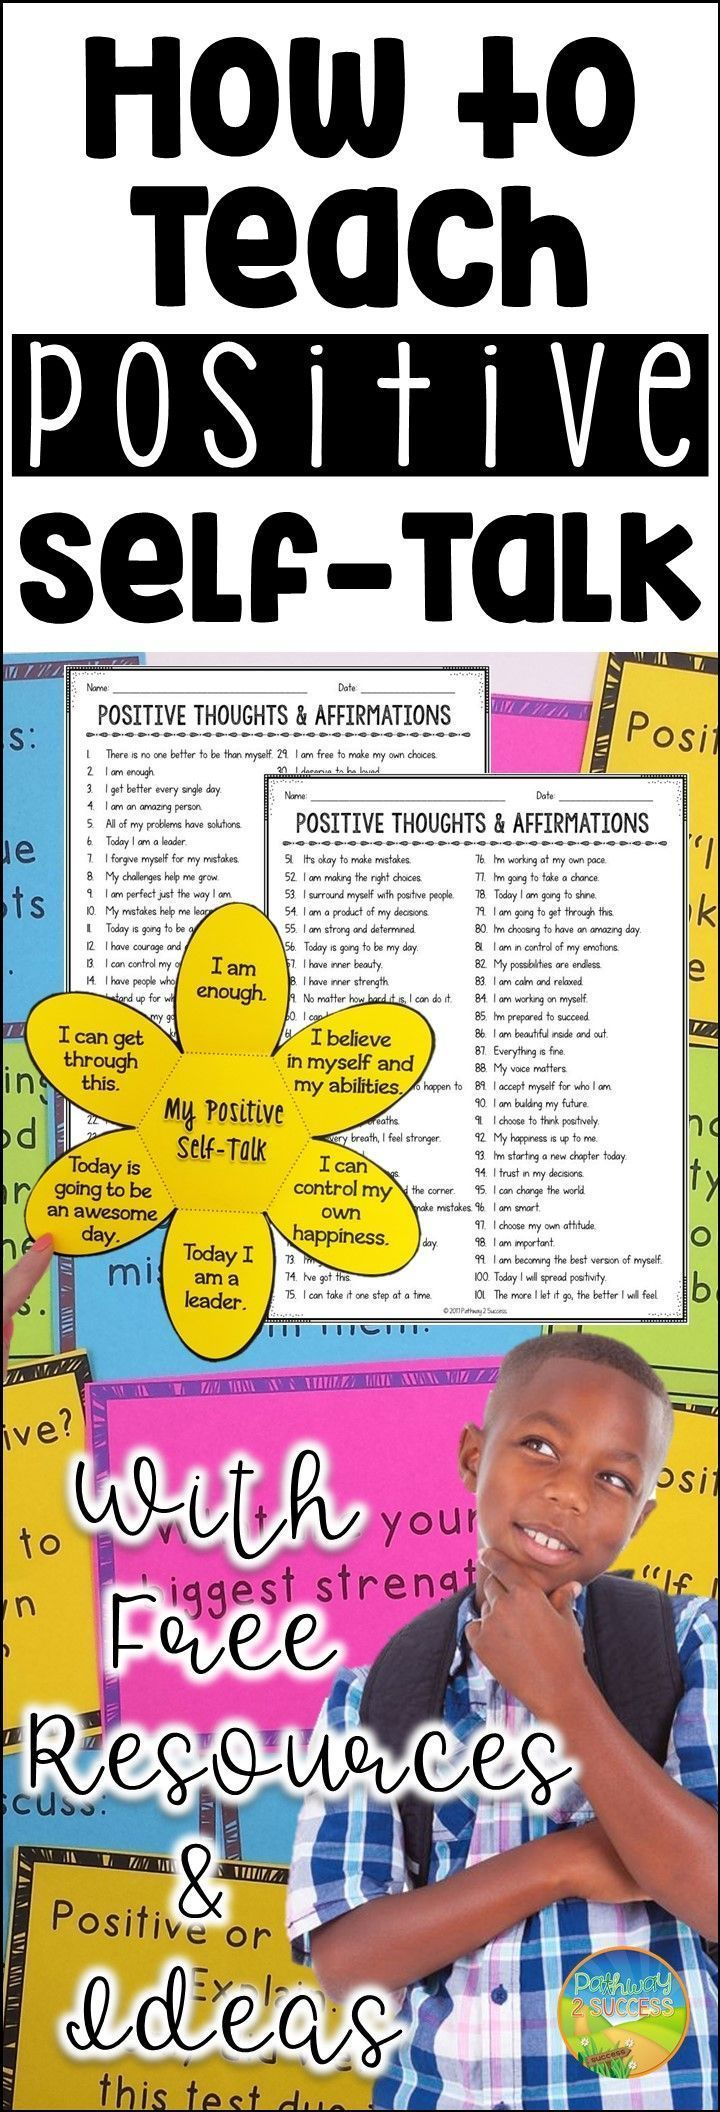 How to Teach Positive Self-Talk